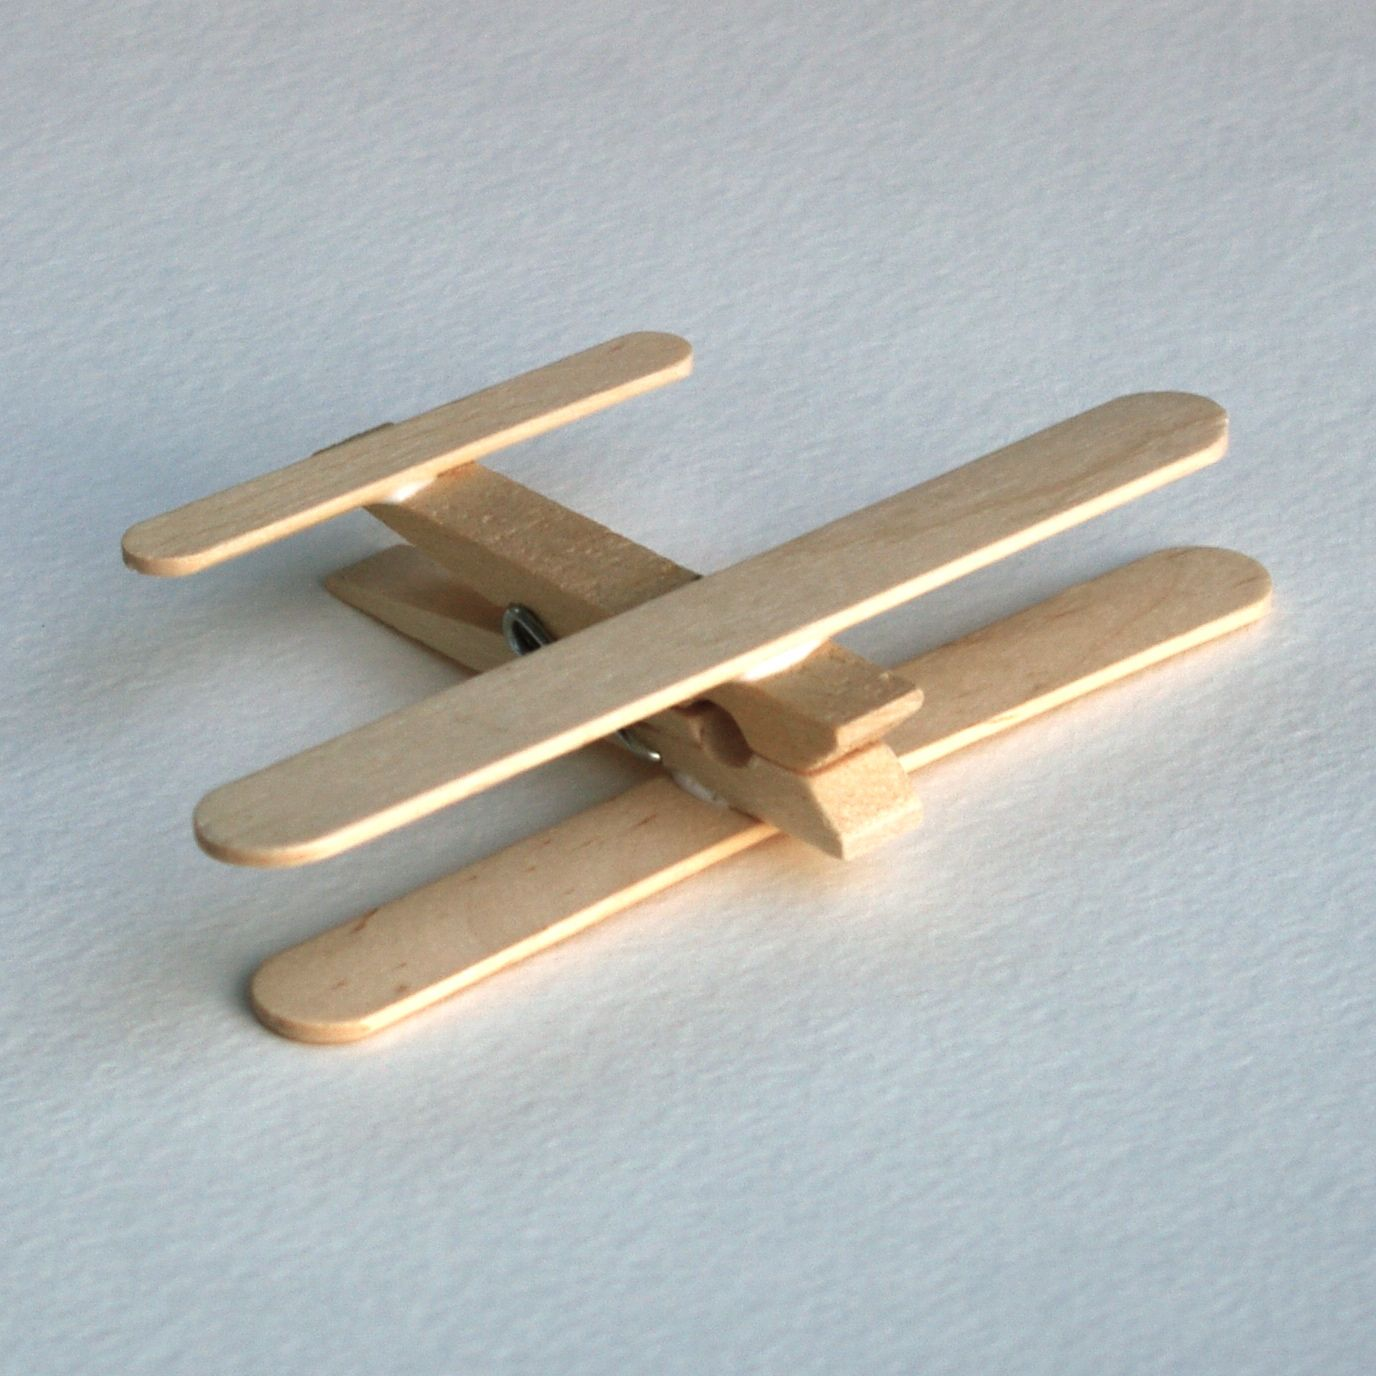 Bastelsachen Für Kinder Planes Made From Clothes Pins And Popsicle Sticks Tolle